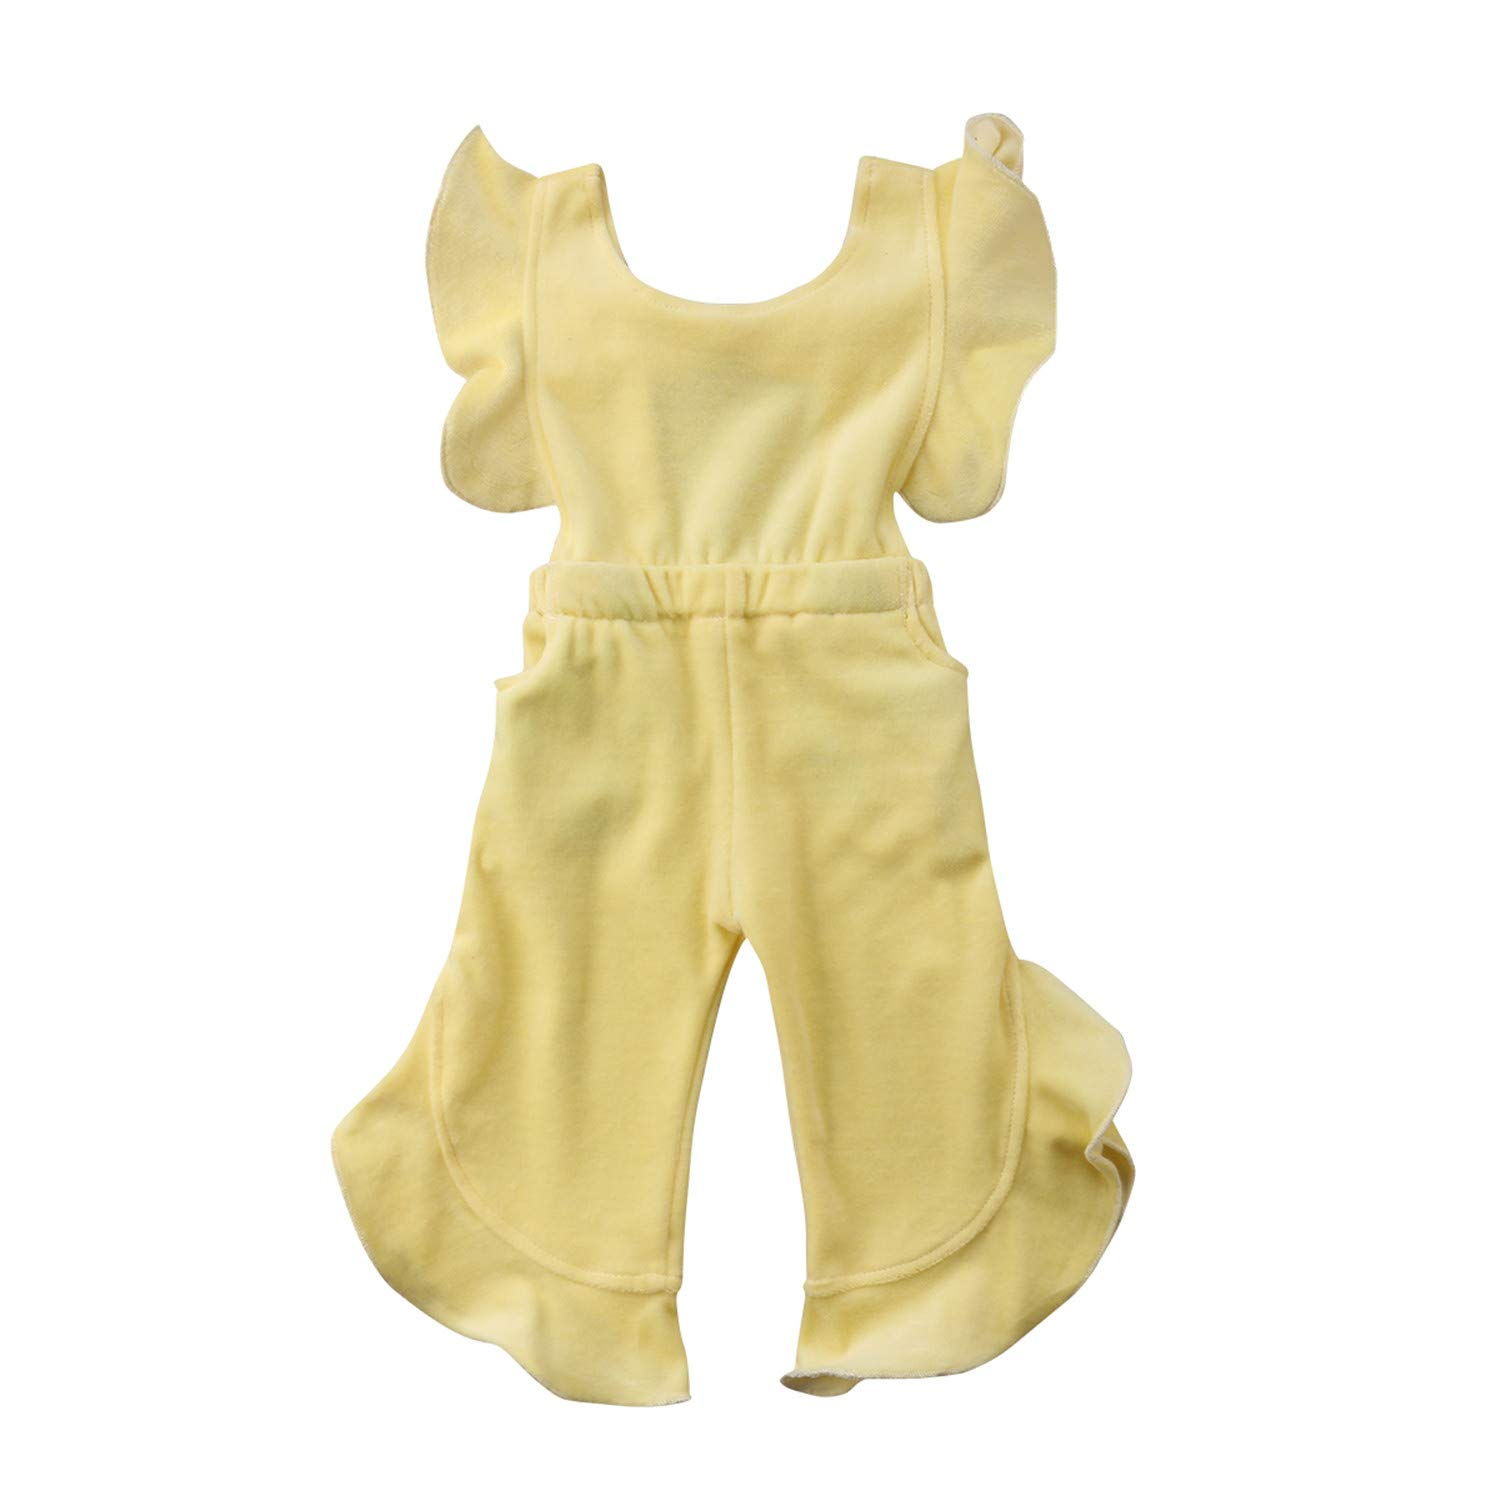 Evan Fordd Toddler Kid Baby Girl Clothes Korean Velvet Romper Jumpsuit Ruffled Overall